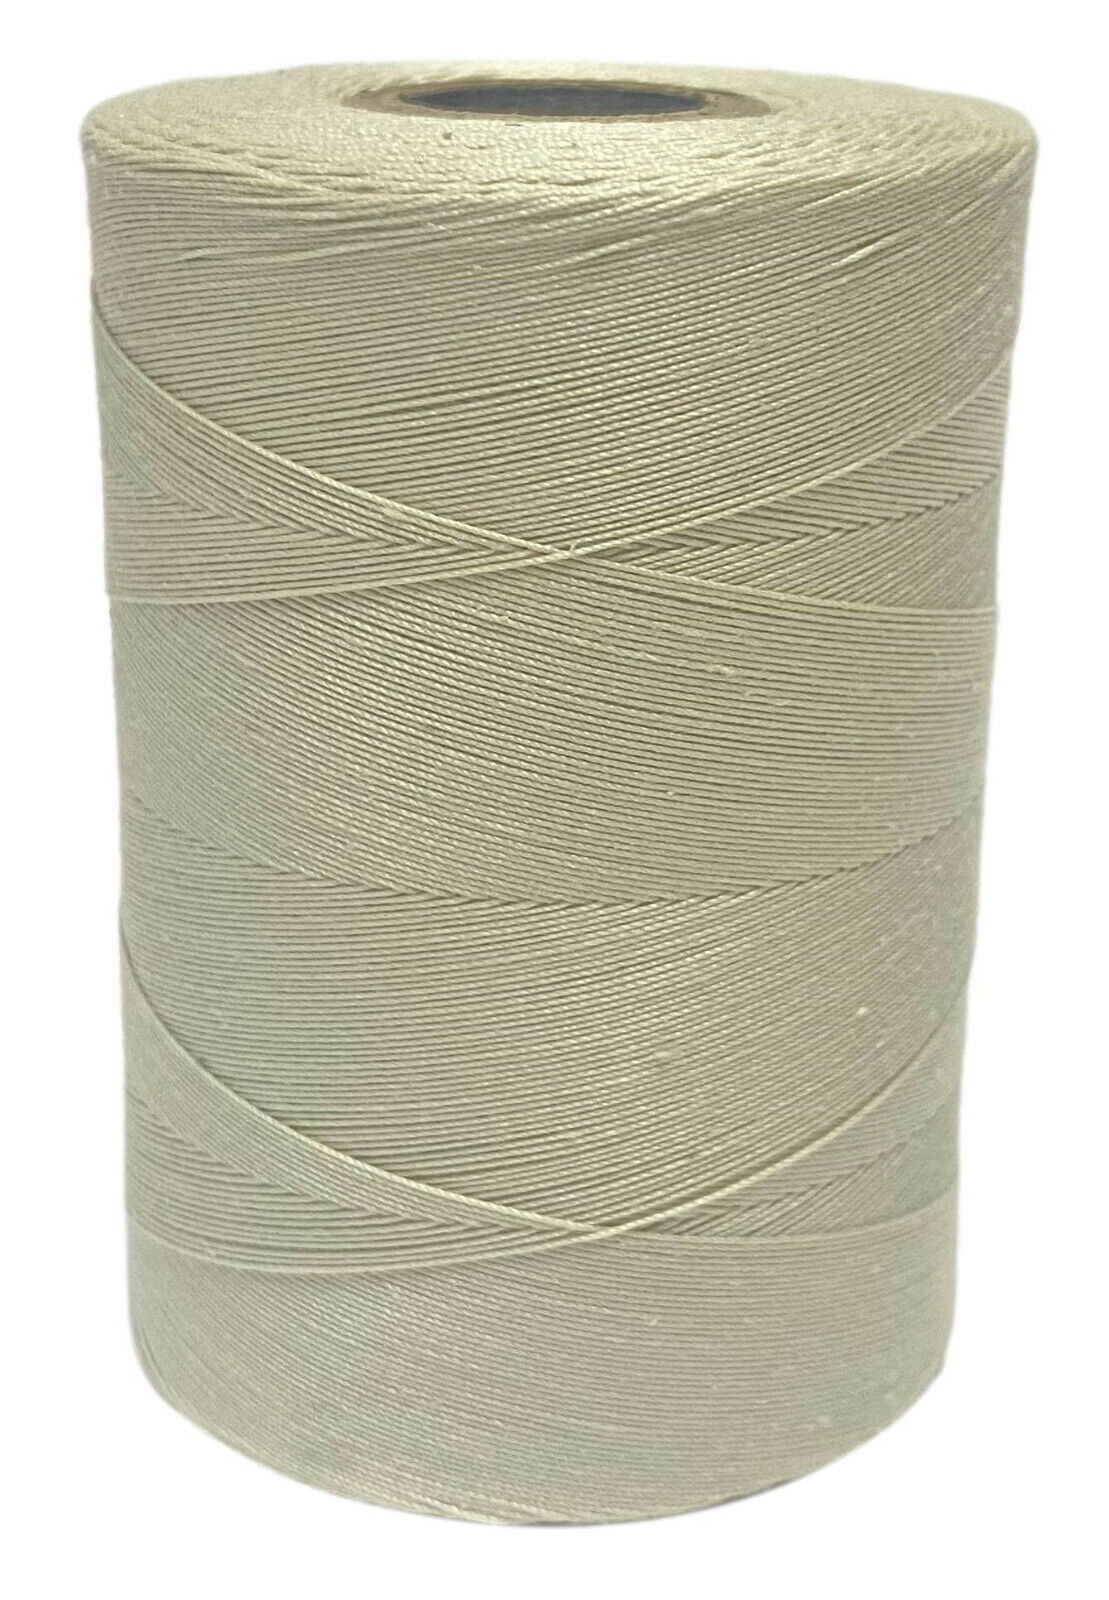 Conso Sewing Thread 100% Cotton Gassed & Mercerized – Box of 16 Rolls Color #023 Crafts